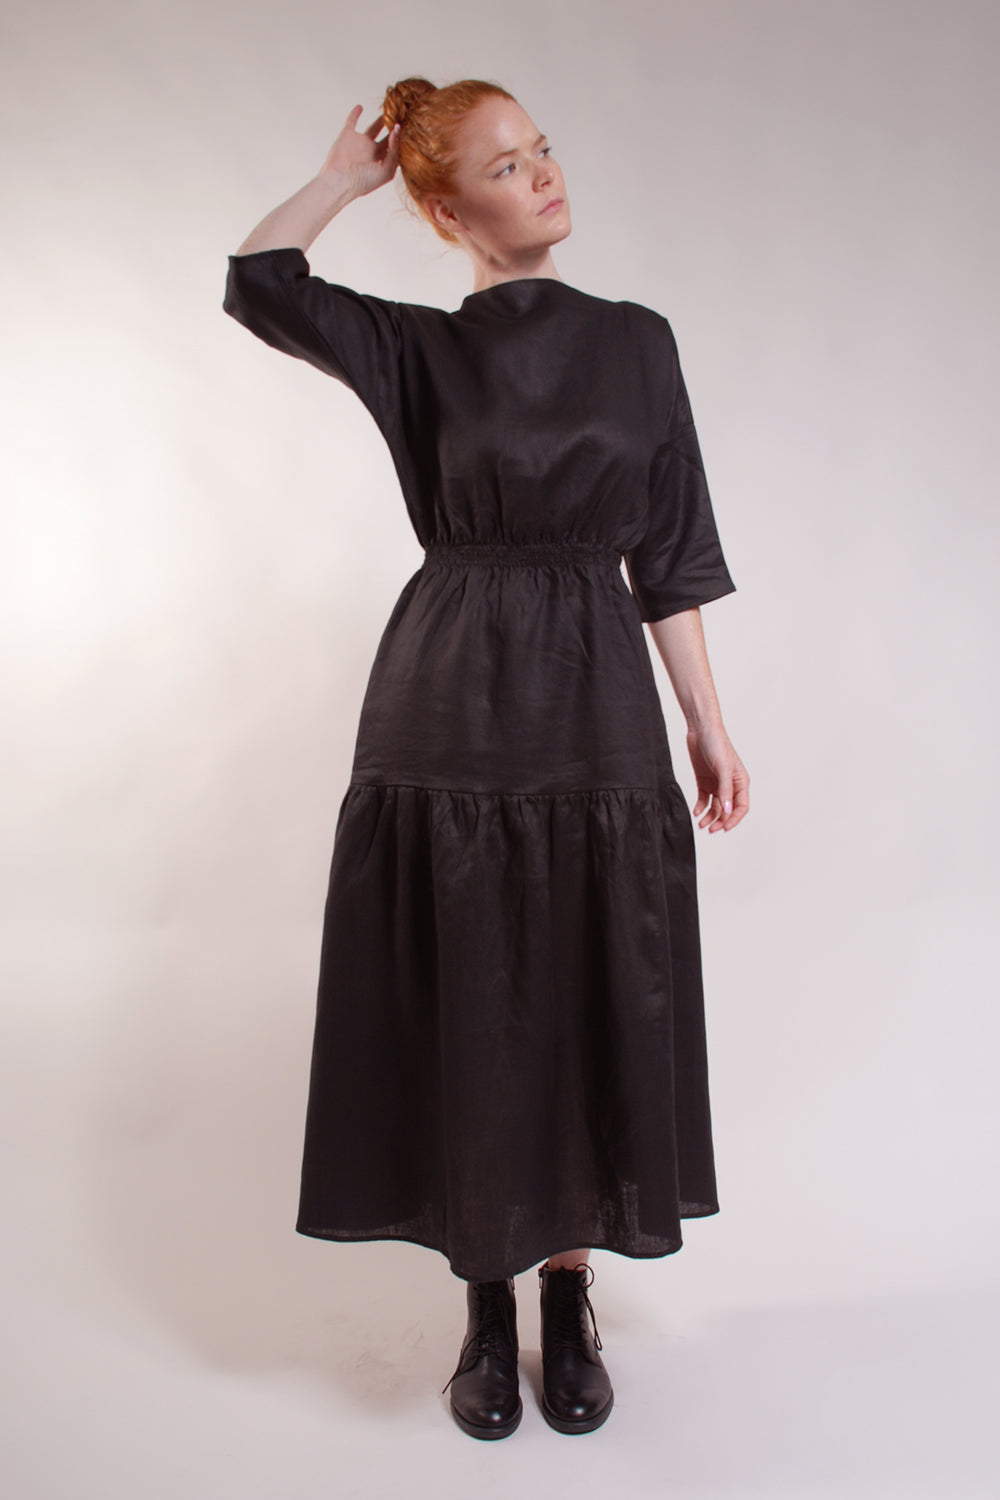 Boatneck dress with 3/4 sleeves, elastic shirred waist, drop hip gathered flouncy skirt. 100% Linen.